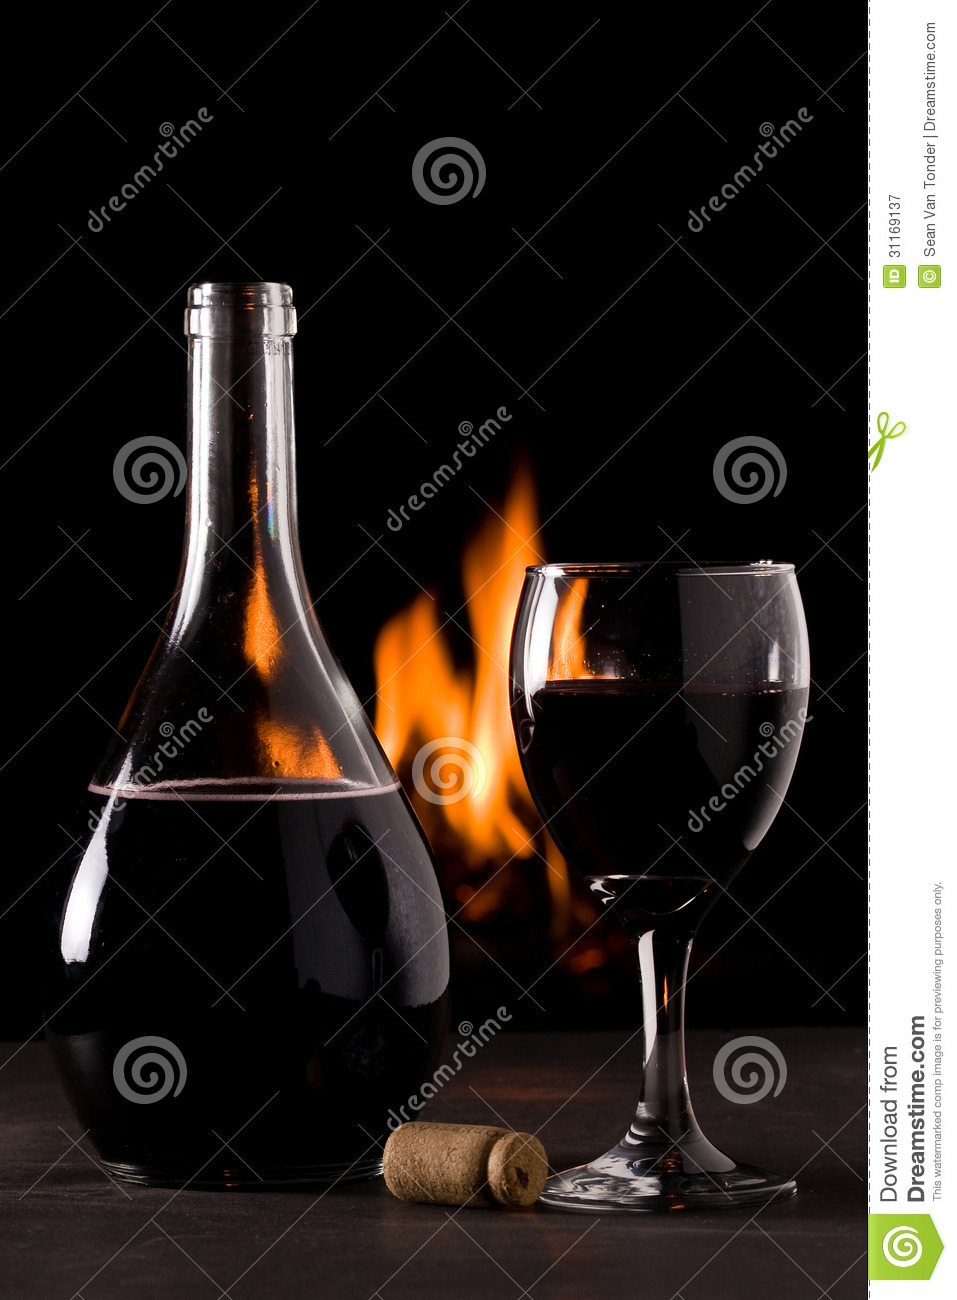 a bottle of red wine and a glass in front of a fireplace royalty